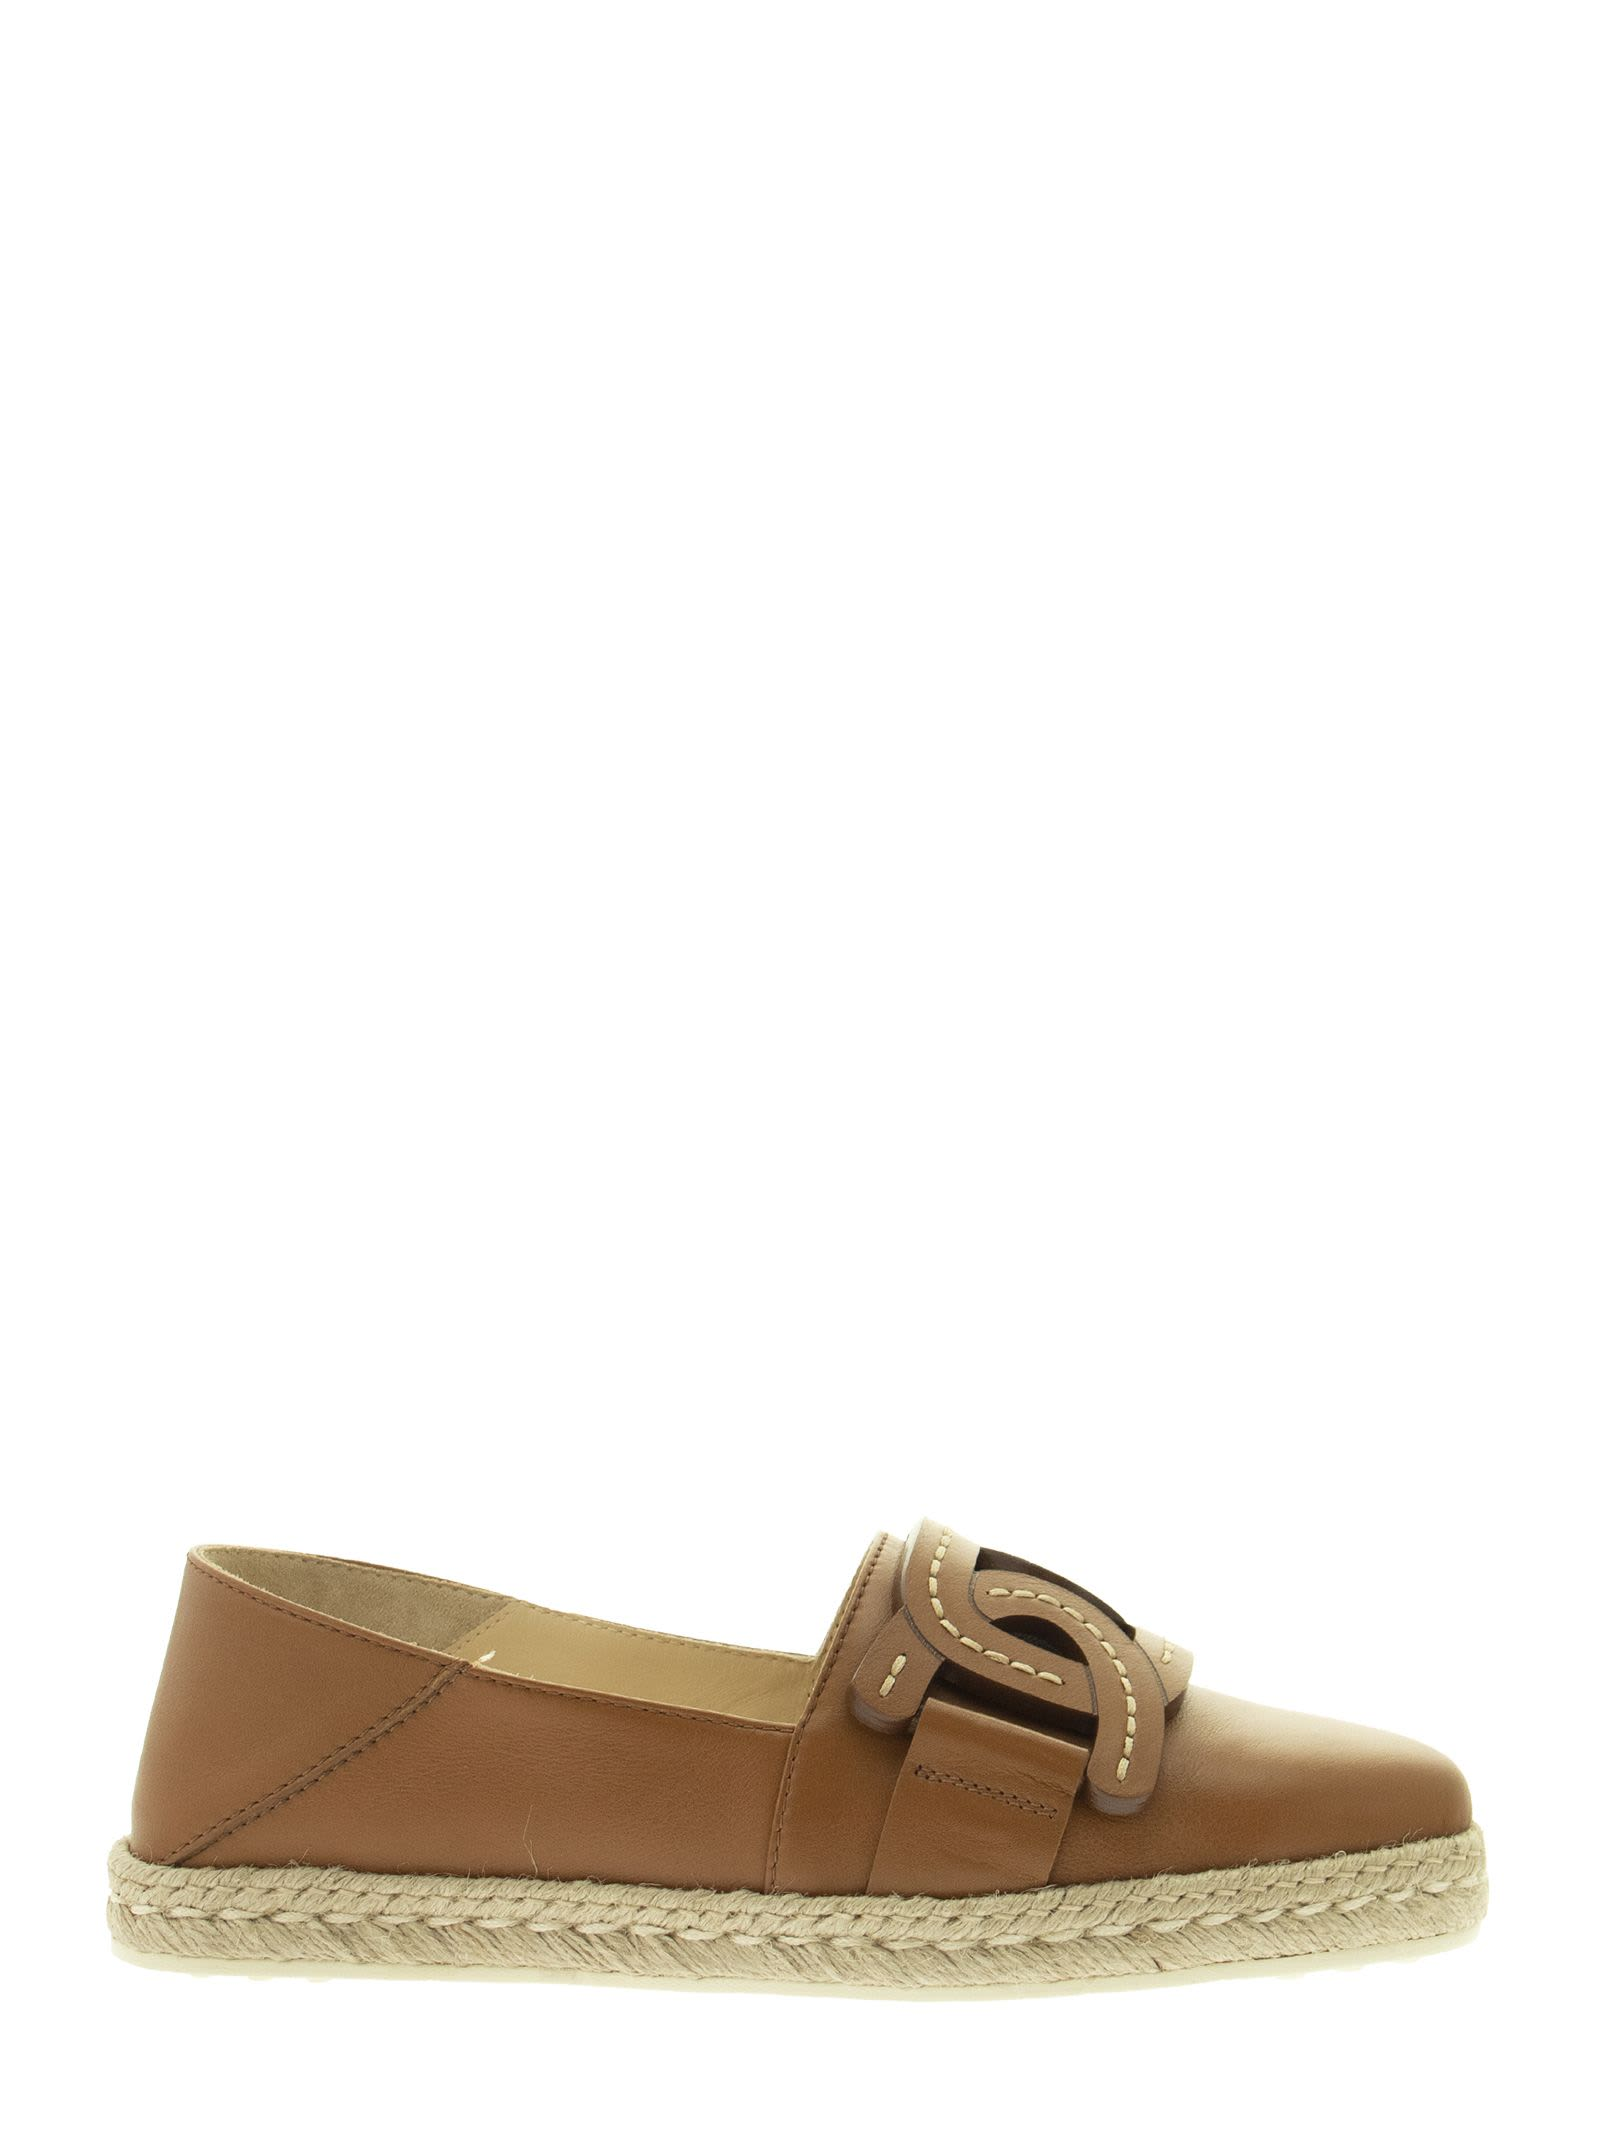 Buy Tods Slip-ons In Leather online, shop Tods shoes with free shipping